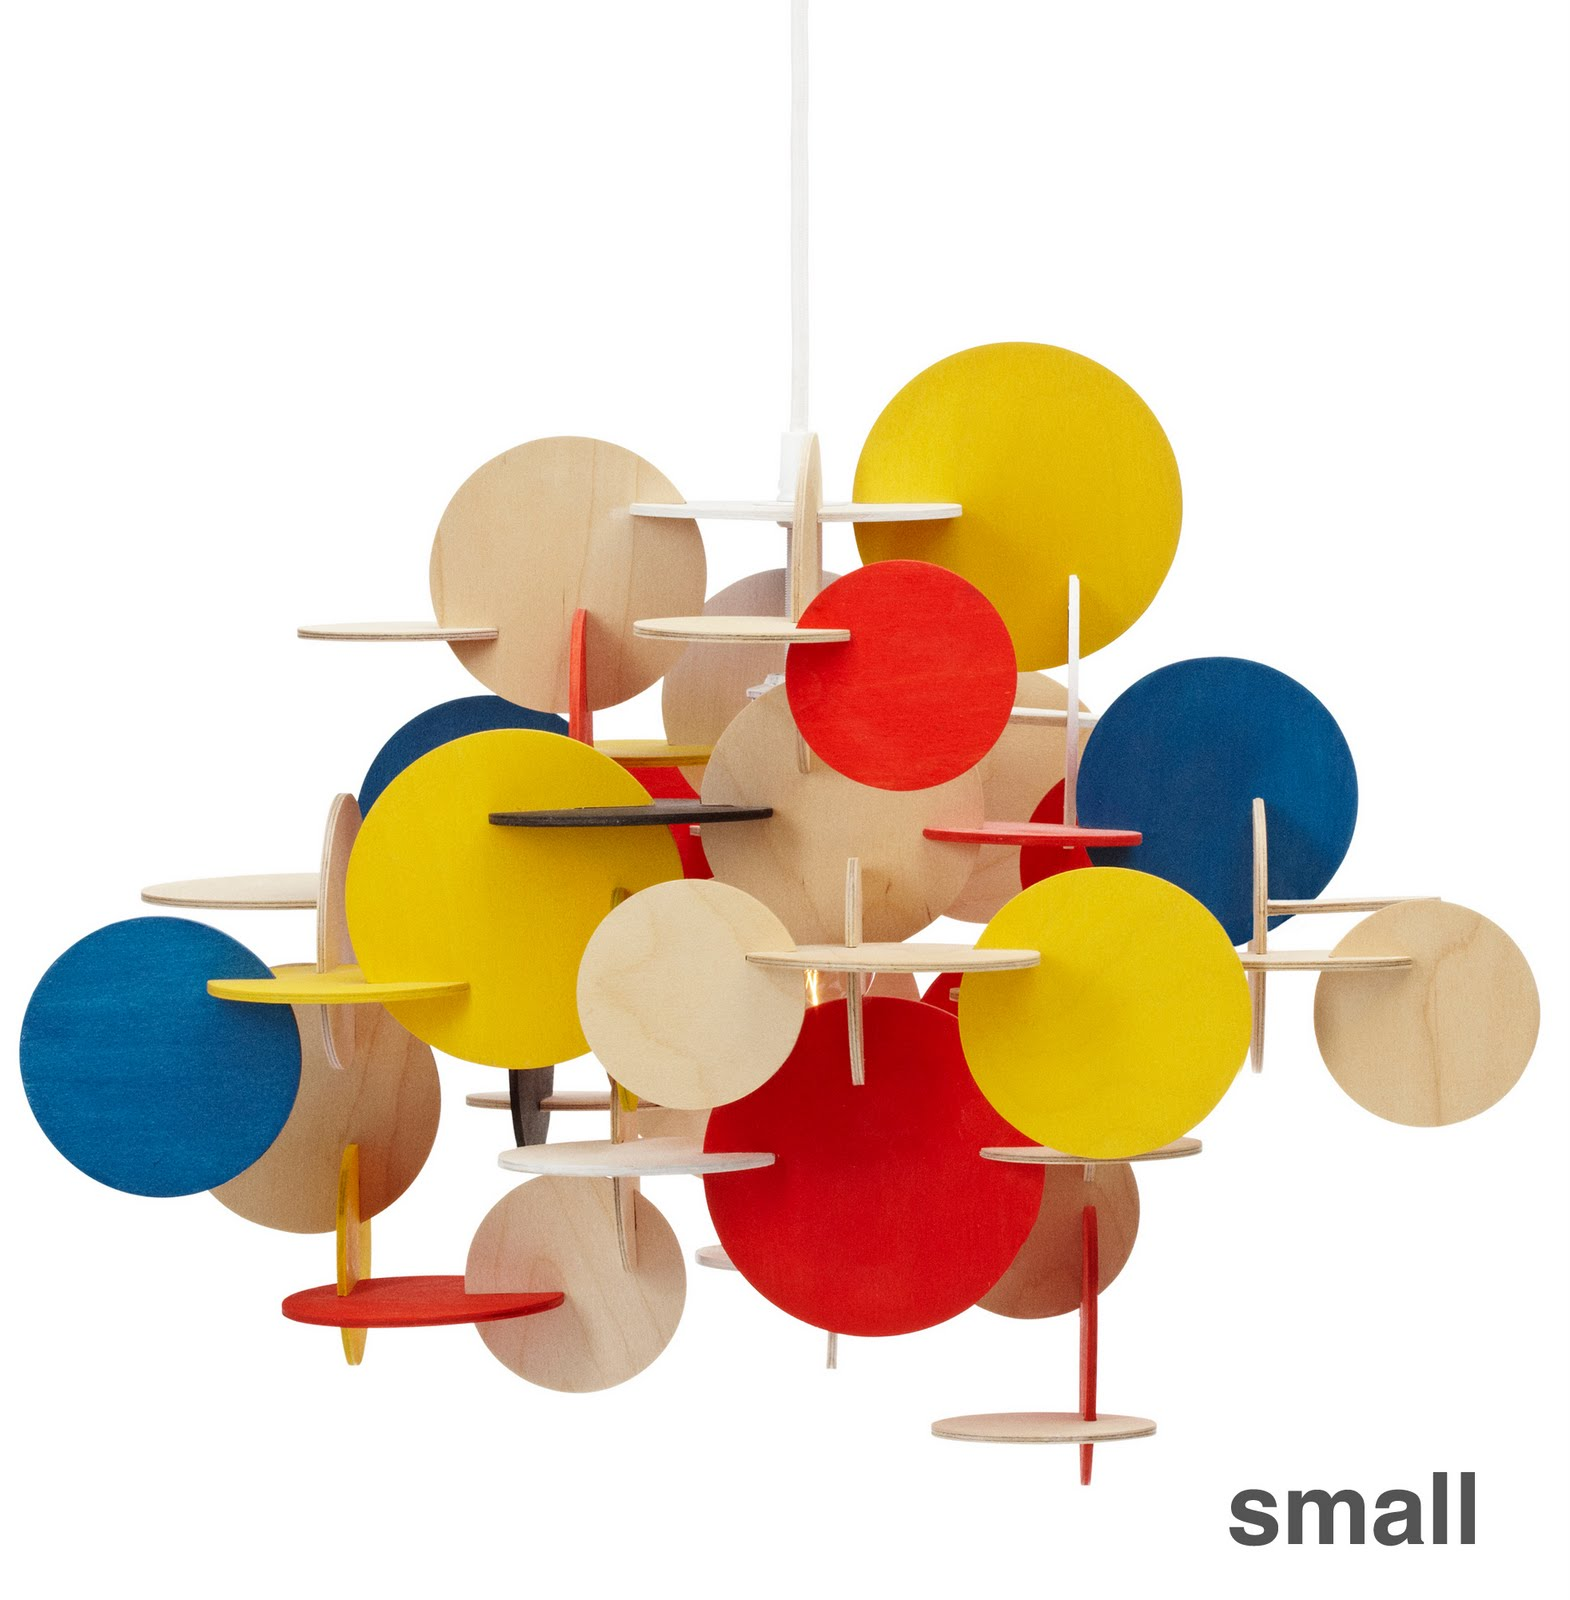 Marvelous Bau Is A Sculptural Pendant Lamp Designed By The Danish Designer Vibeke  Fonnesberg Schmidt For Normann Copenhagen. The Design Is Based On  Interlocking ... Amazing Pictures